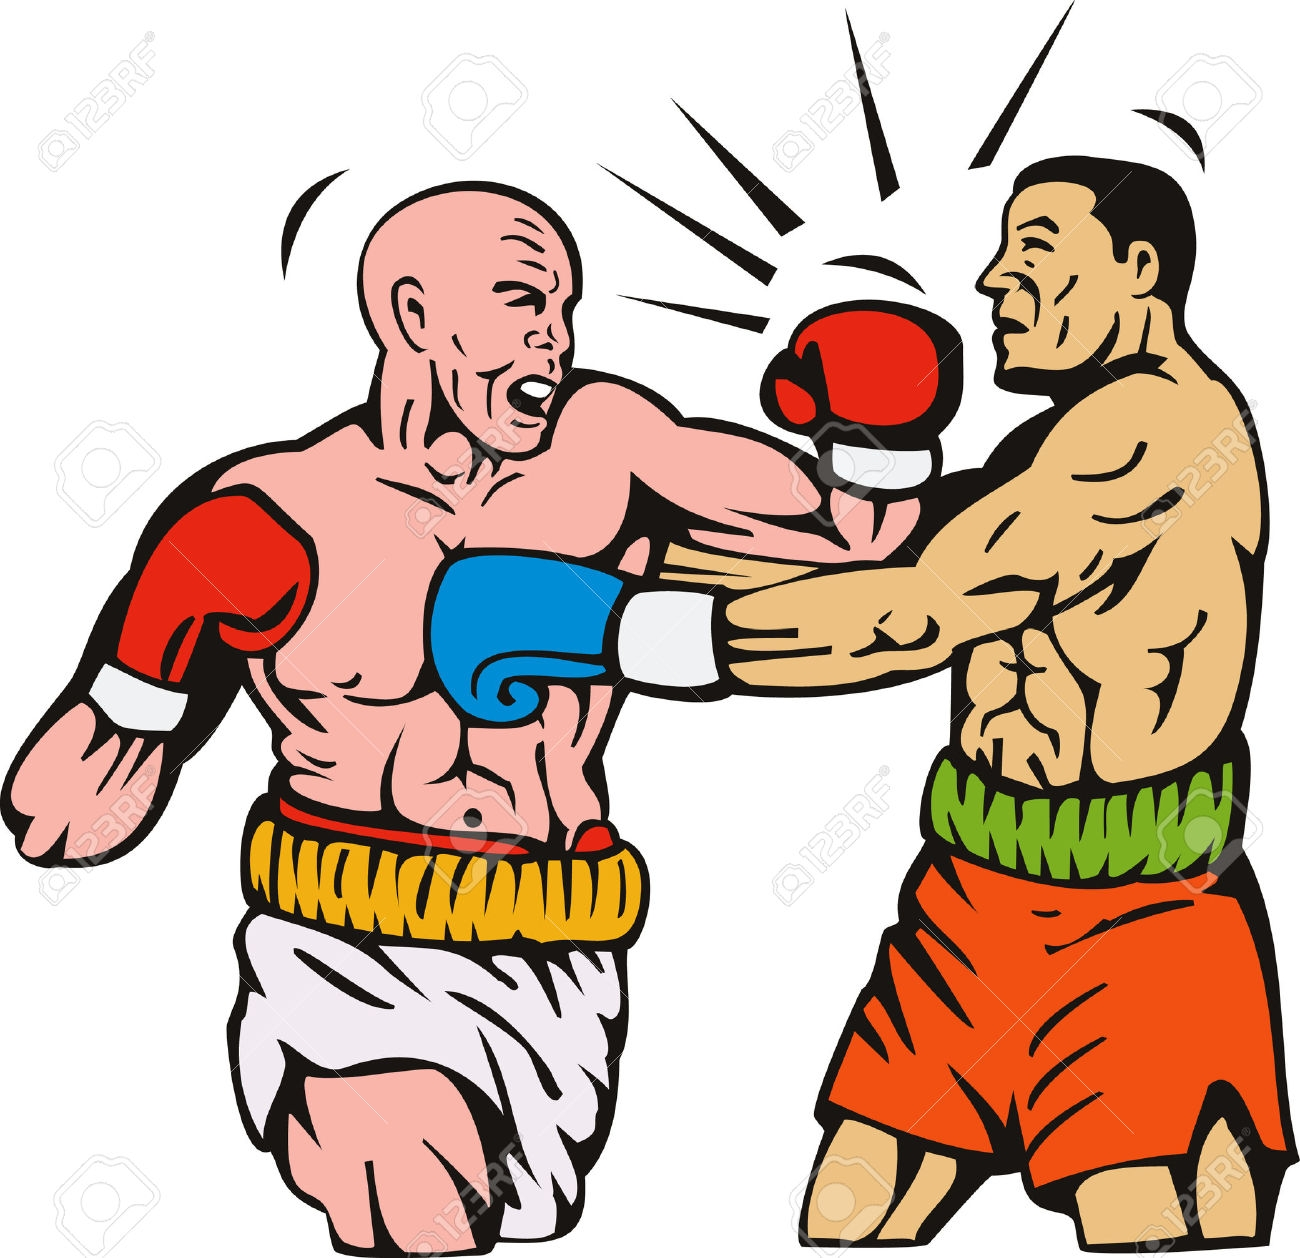 Boxing clipart boxing knockout, Boxing boxing knockout.